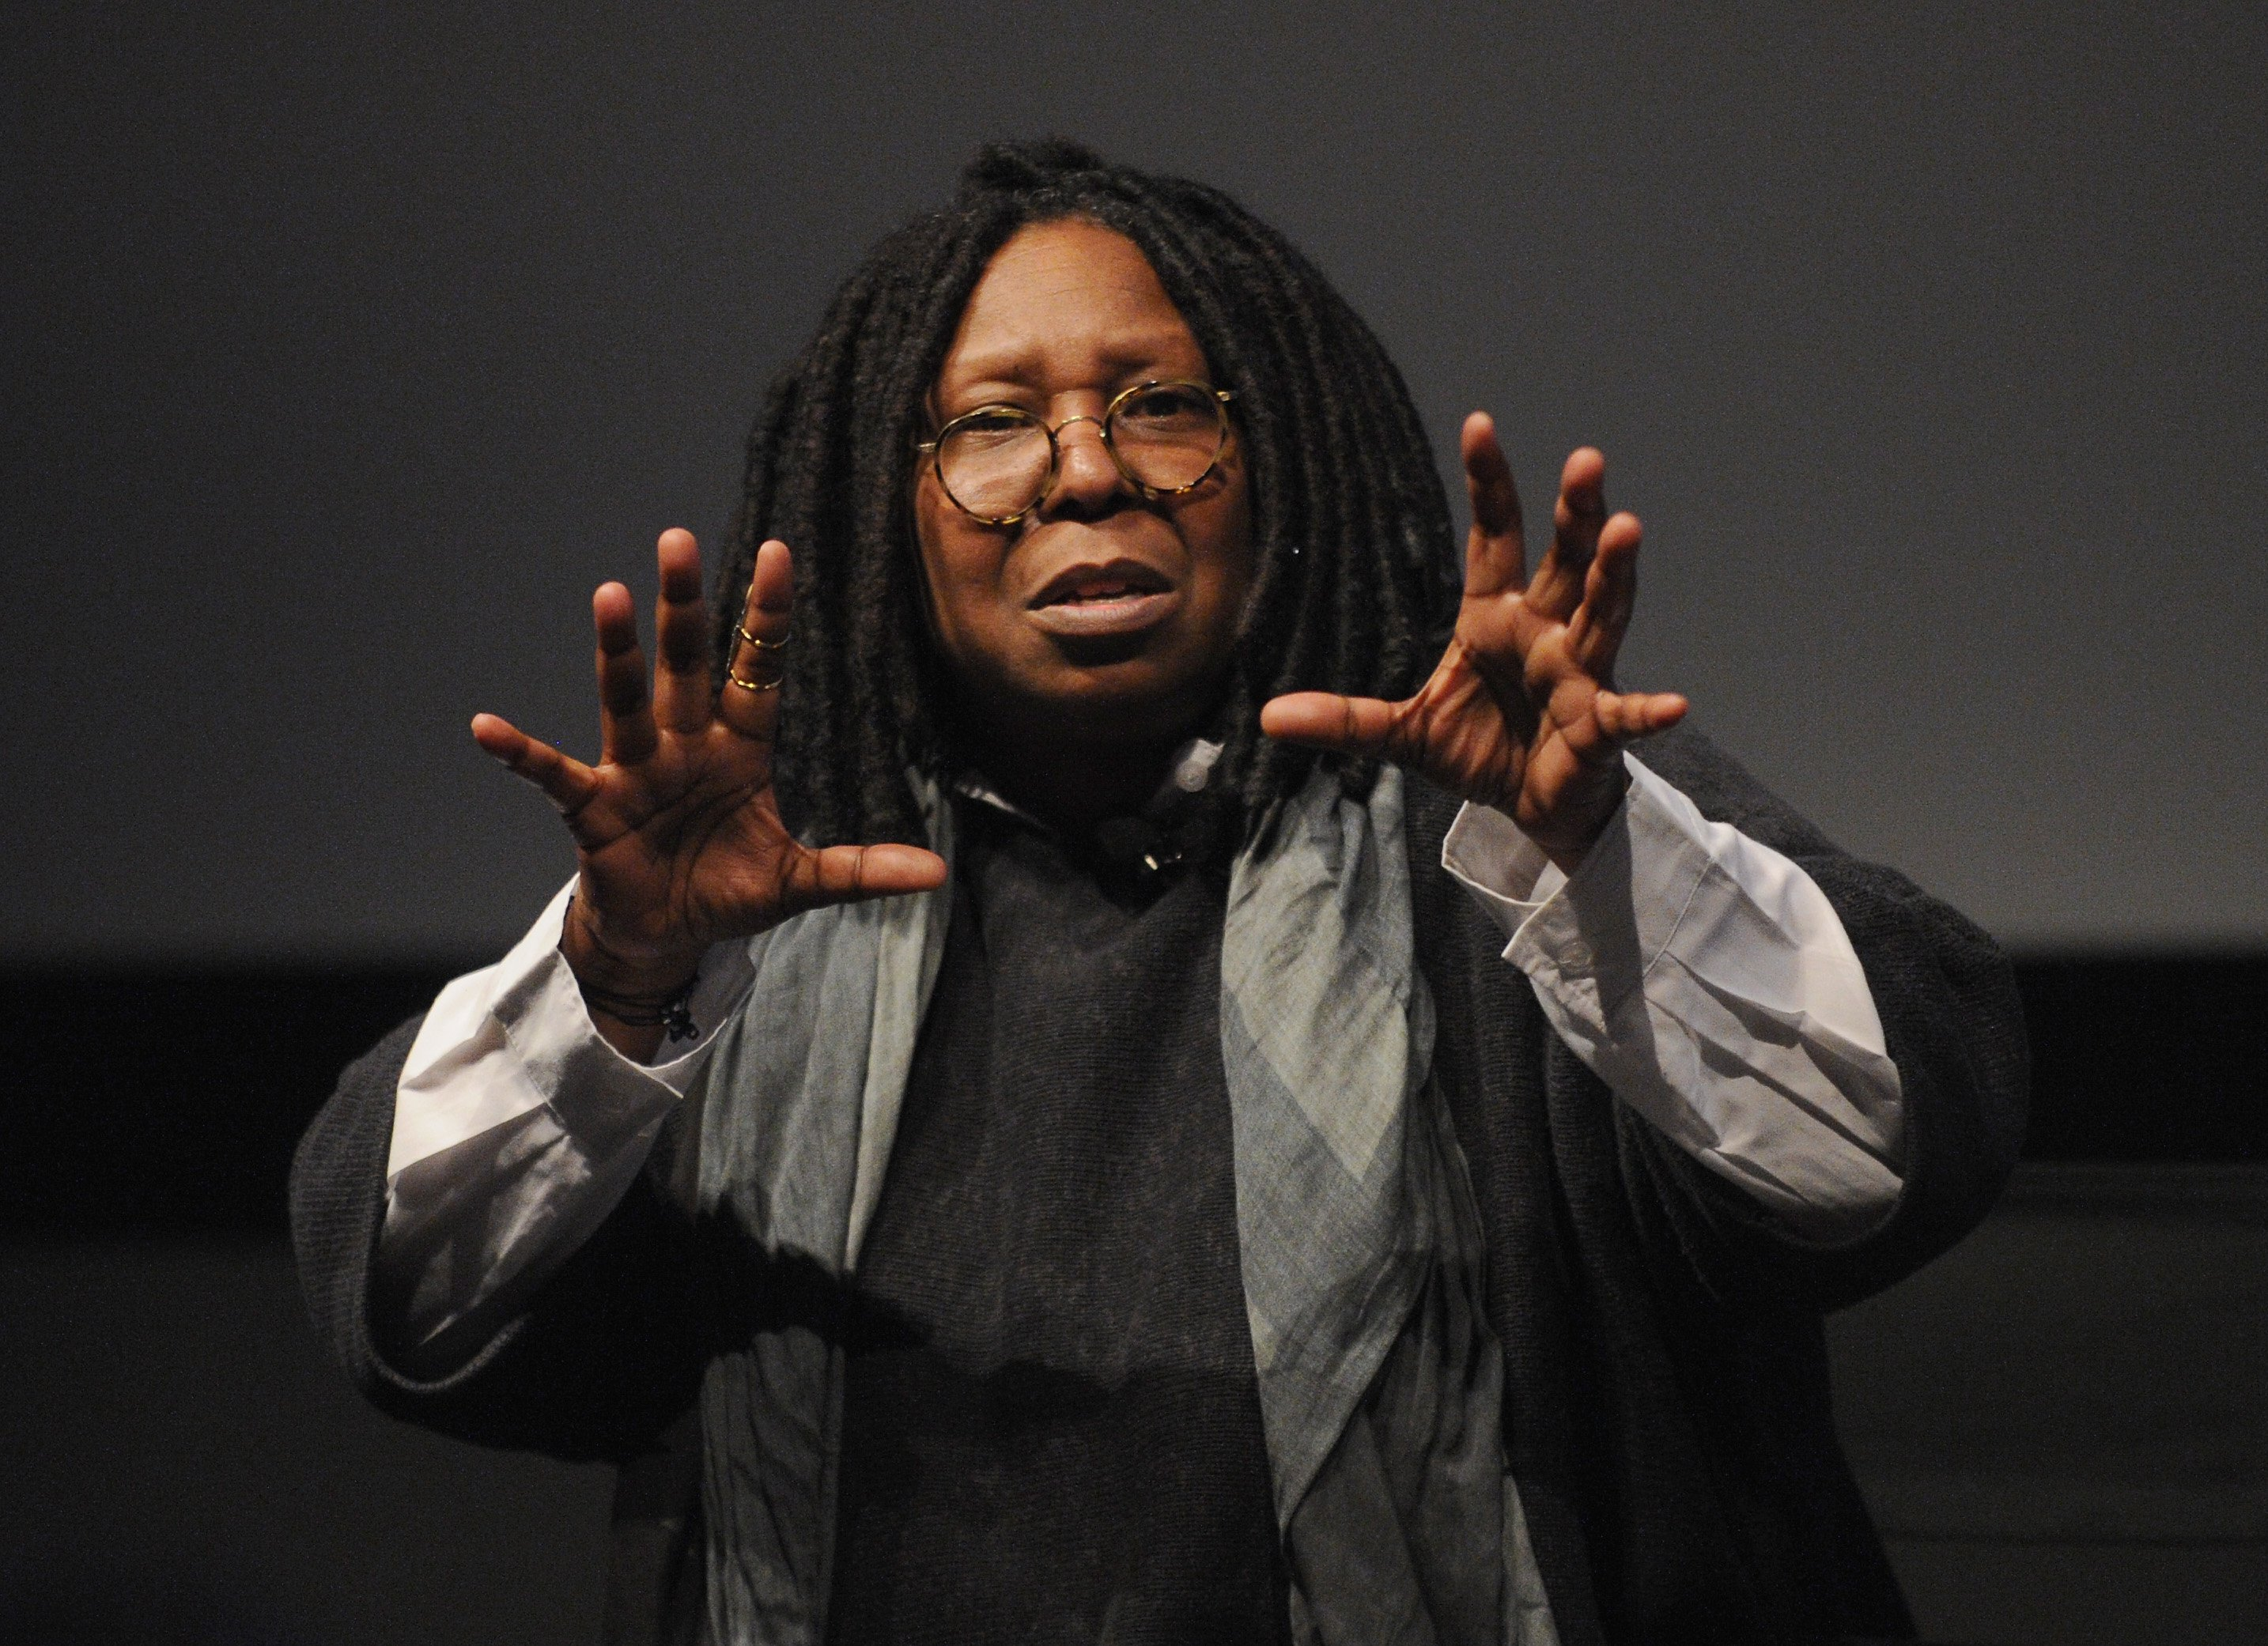 Whoopi Goldberg on April 22, 2013 in New York City   Photo: Getty Images